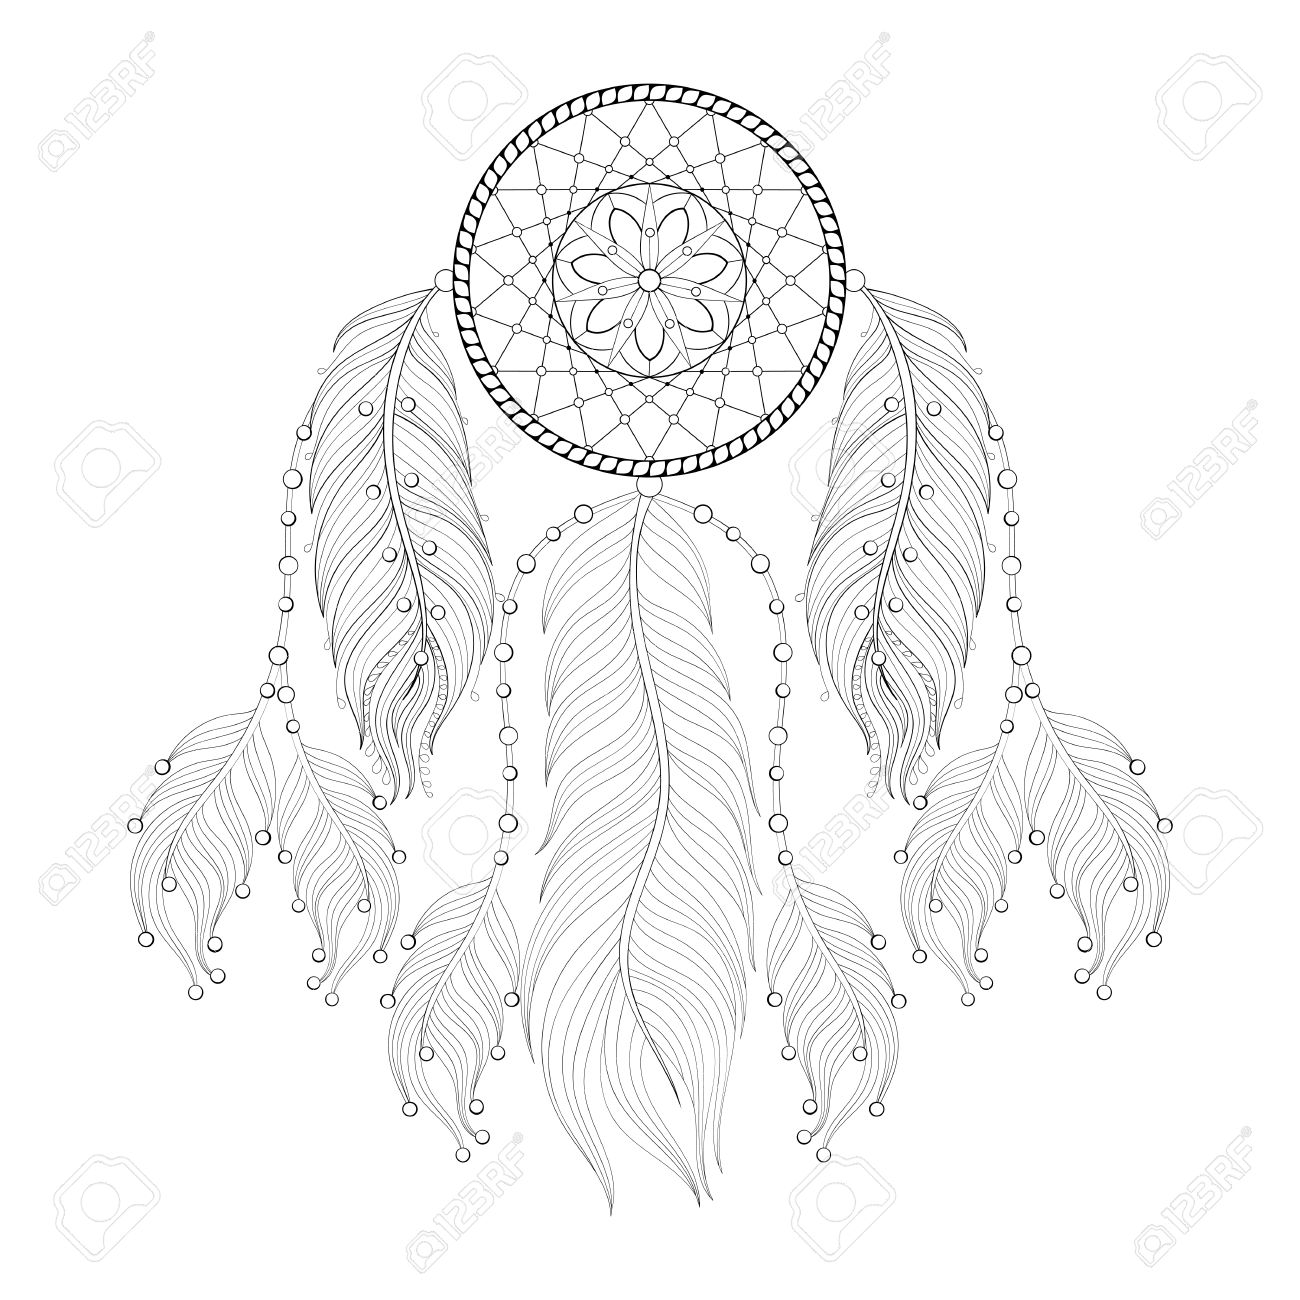 Coloring pages dream catchers - Coloring Pages Dream Catchers Hand Drawn Dream Catcher With Mehendi Mandala For Adult Coloring Pages